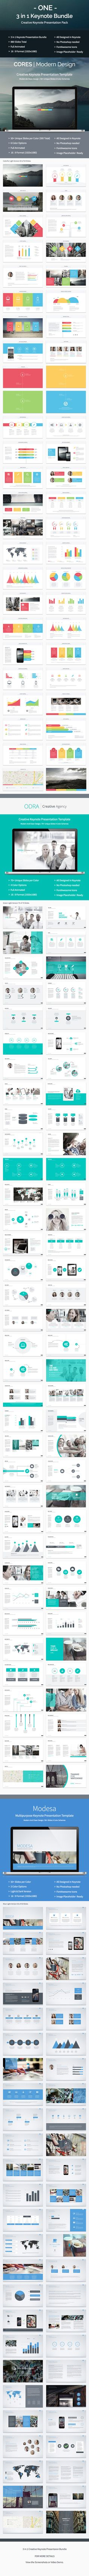 3-in-1 Keynote Bundle Vol. 1 (Keynote Templates)